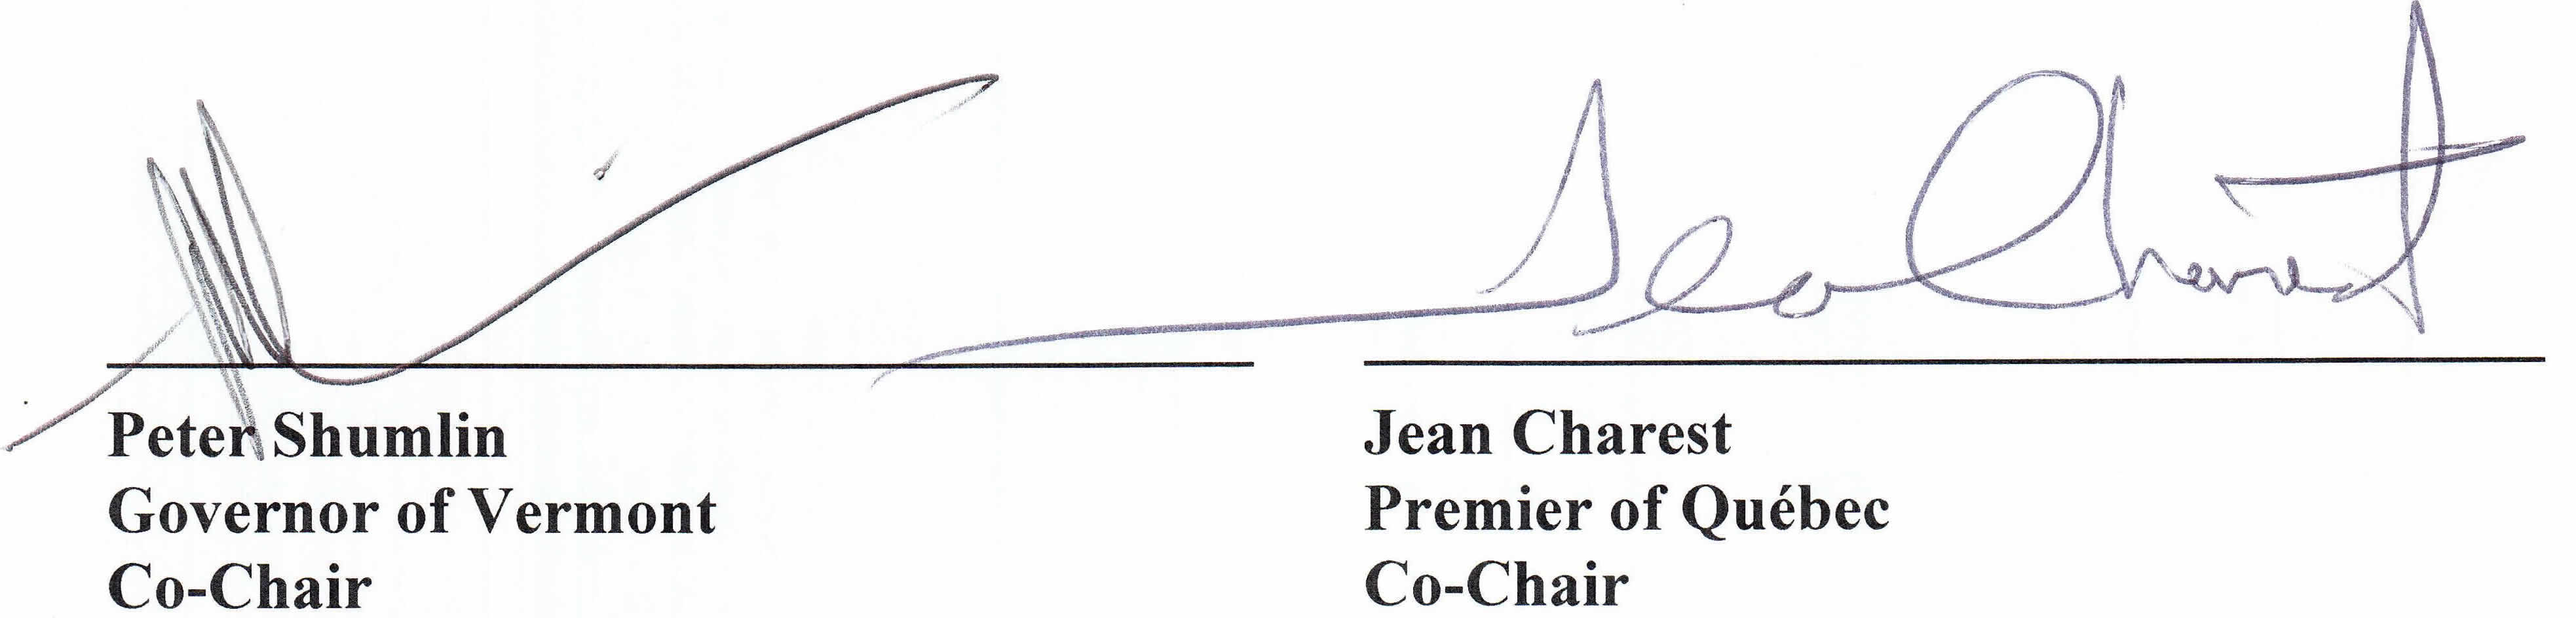 Governor Shumlin and Premier Charest signatures